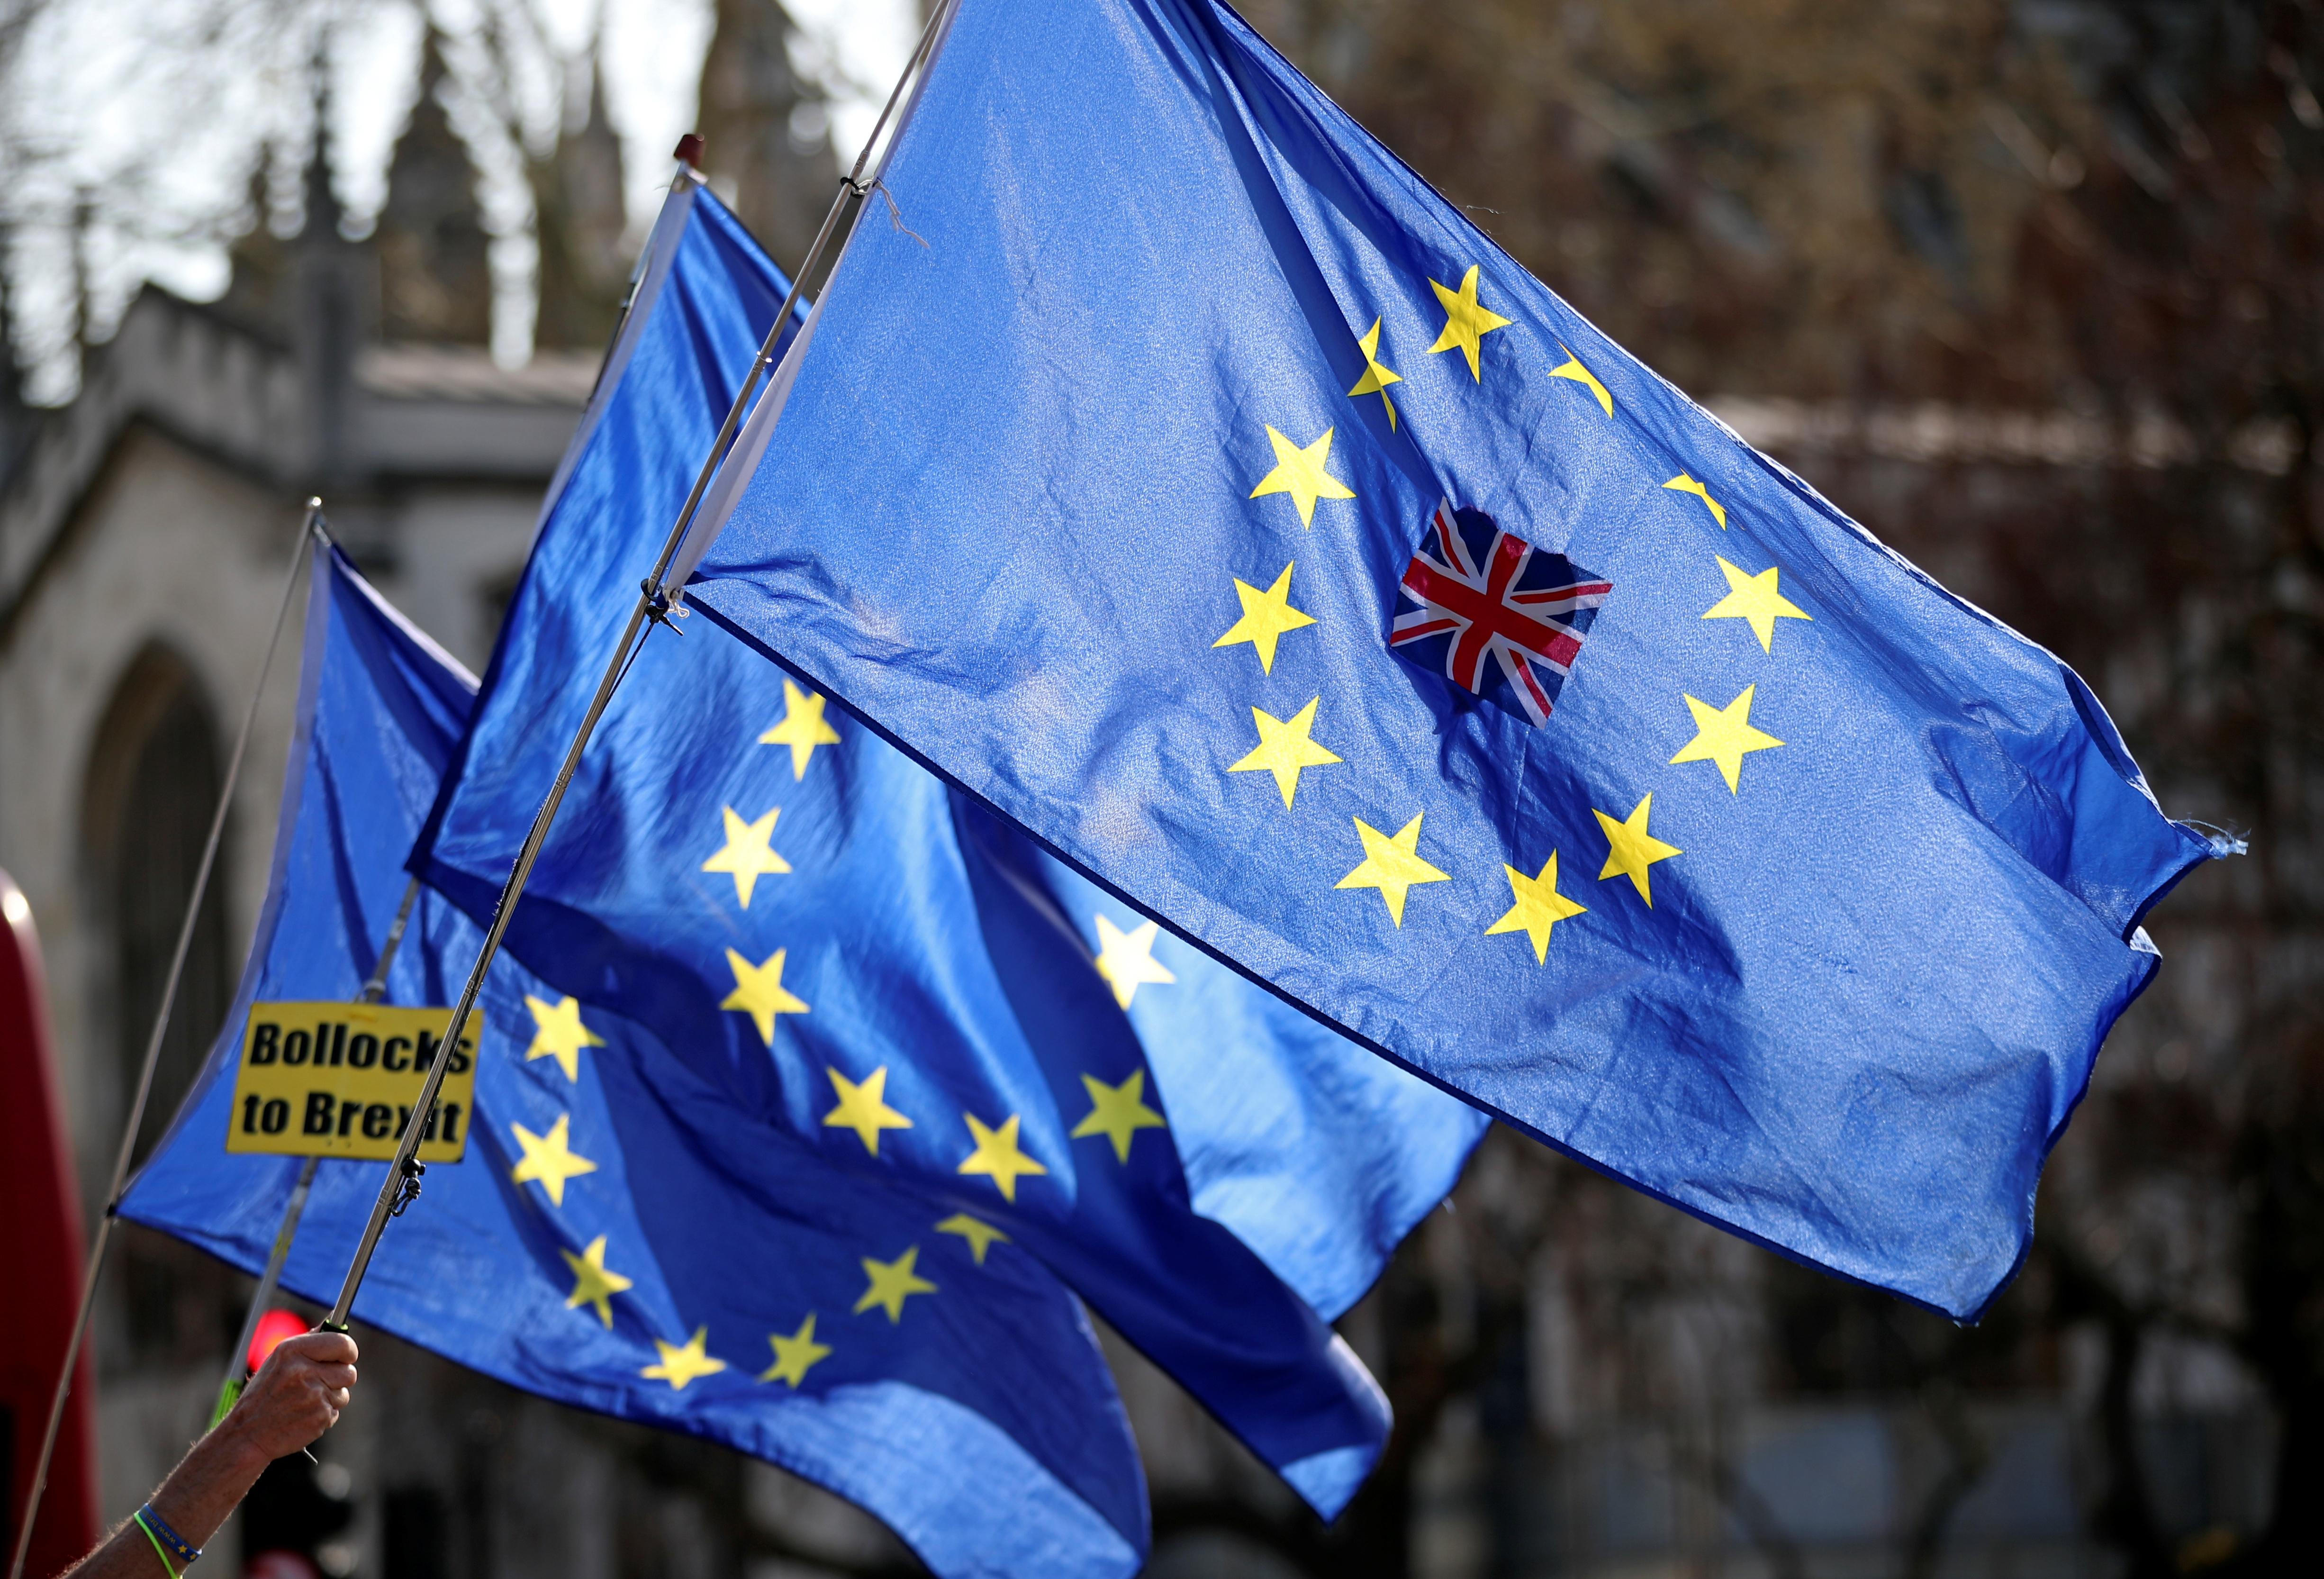 Most EU governments back another Brexit delay, says EU source - The Times